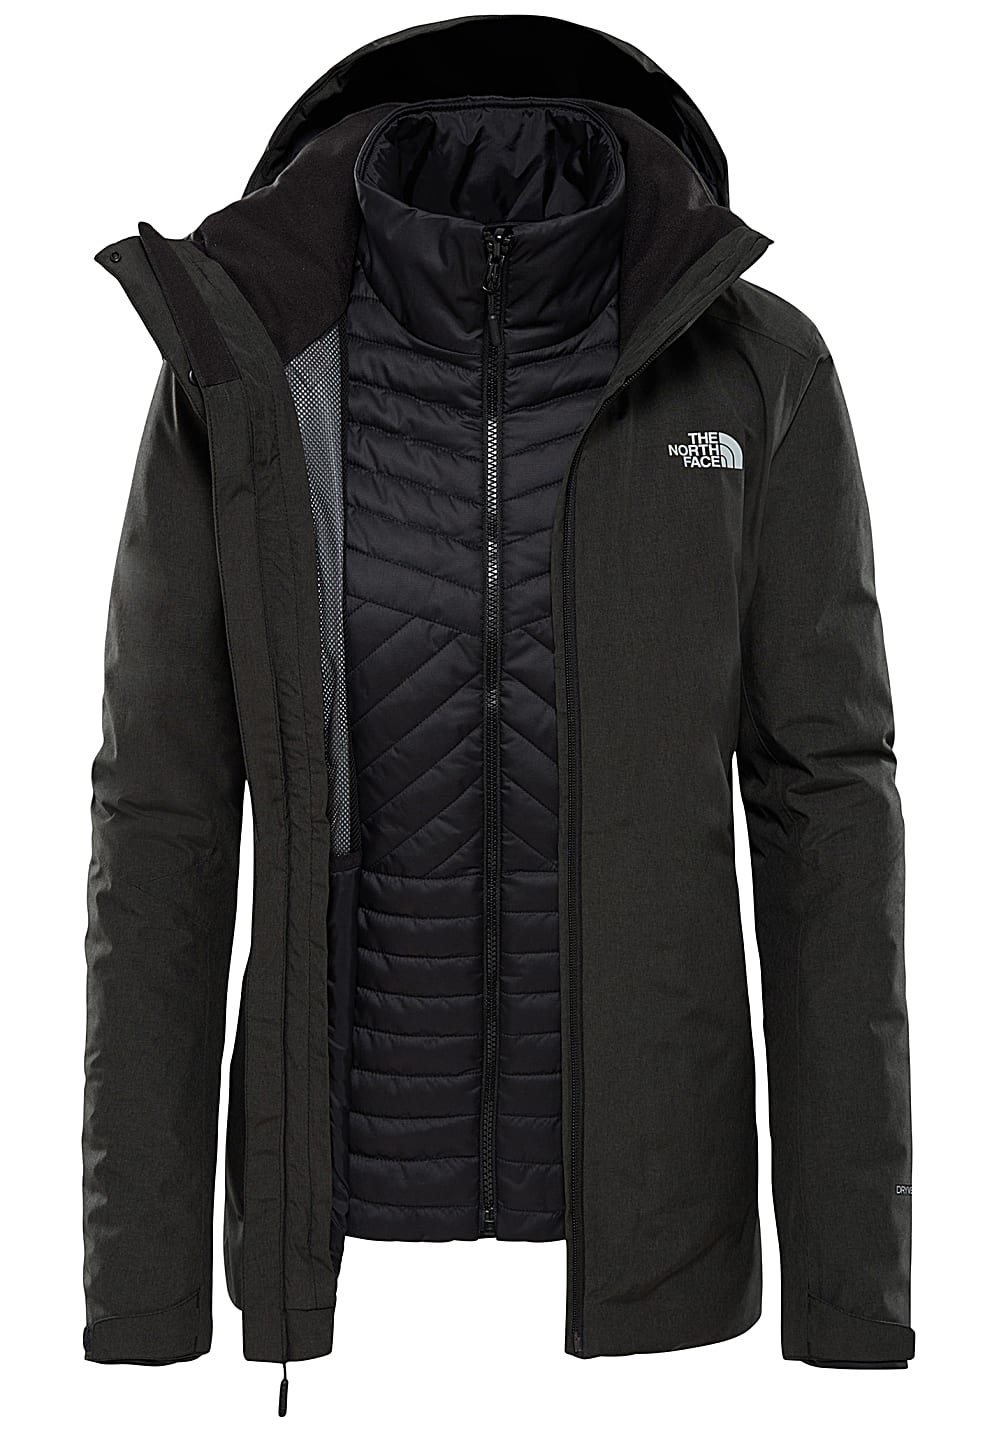 new style 1979b 0eeba THE NORTH FACE Inlux Triclimate - Jacket for Women - Black